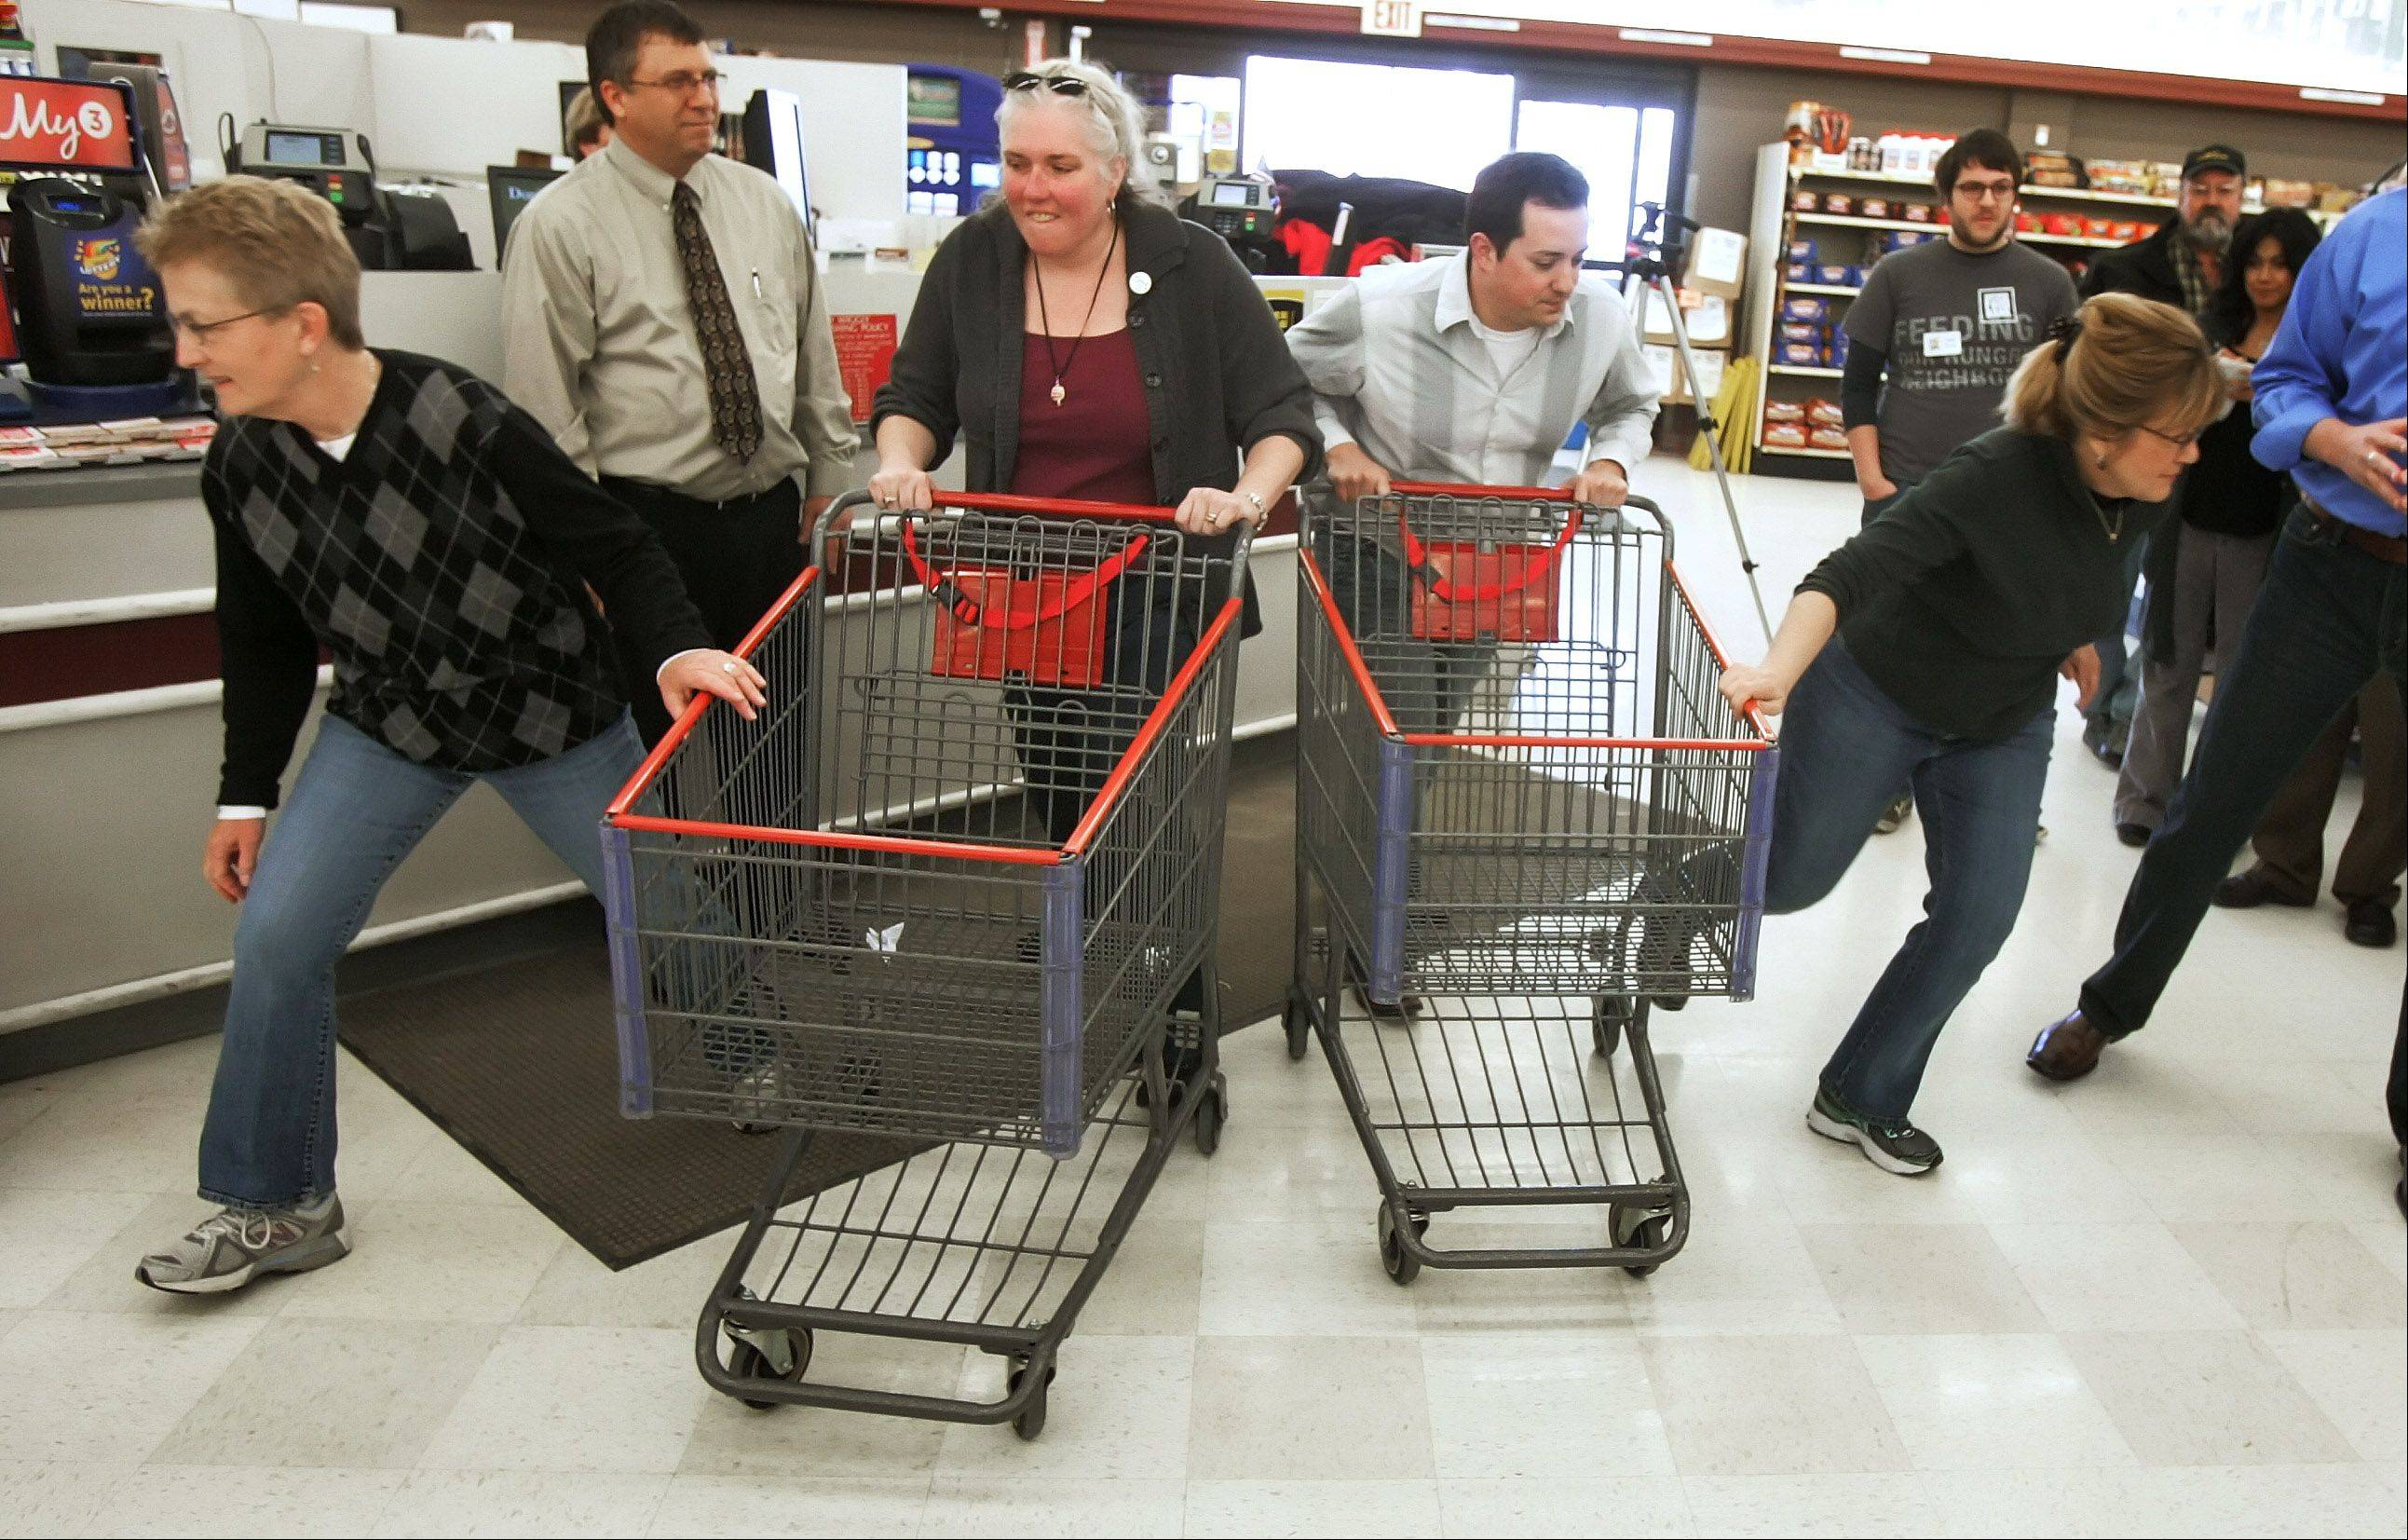 Lake County Board member Pat Carey, left, and state Sen. Melinda Bush, right, begin a 5-minute sprint through the grocery aisles Monday at the Piggly Wiggly store in Antioch for the 15th Annual Race for Hunger. The annual event sponsored by the Lake County Farm Bureau benefits local food pantries.